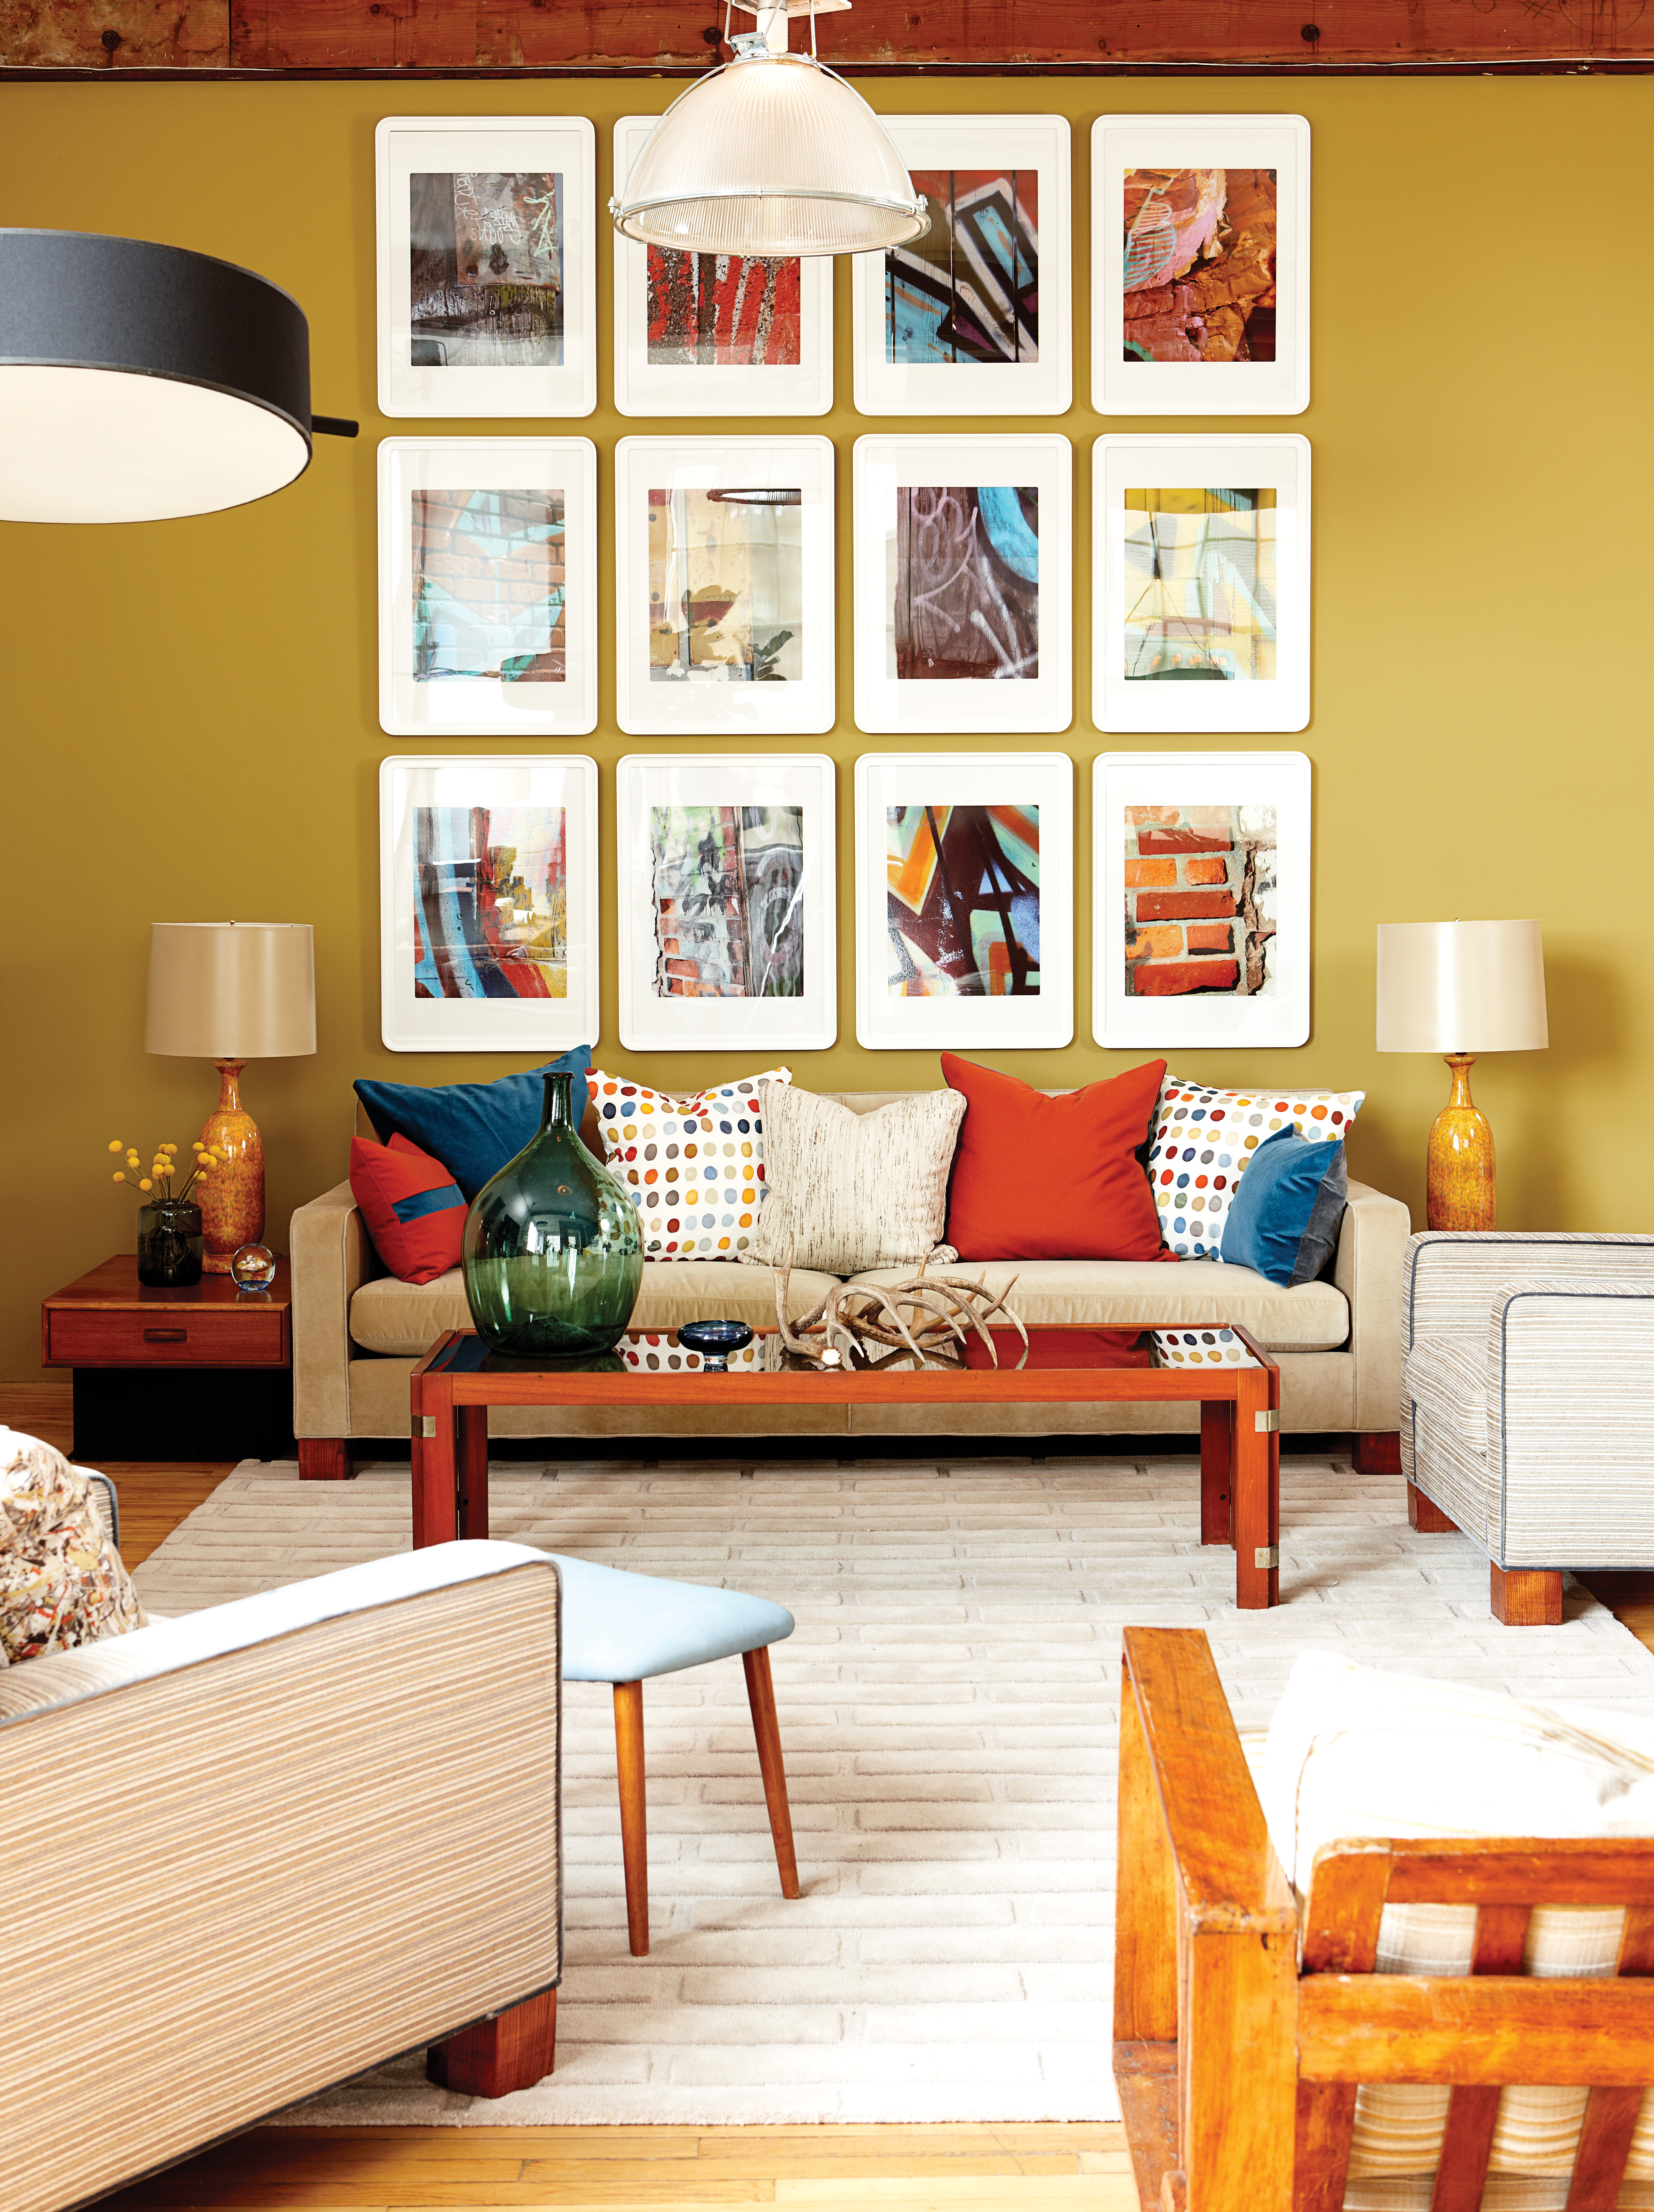 Loft decorating ideas Nine tips from Sarah Richardson  Chatelainecom